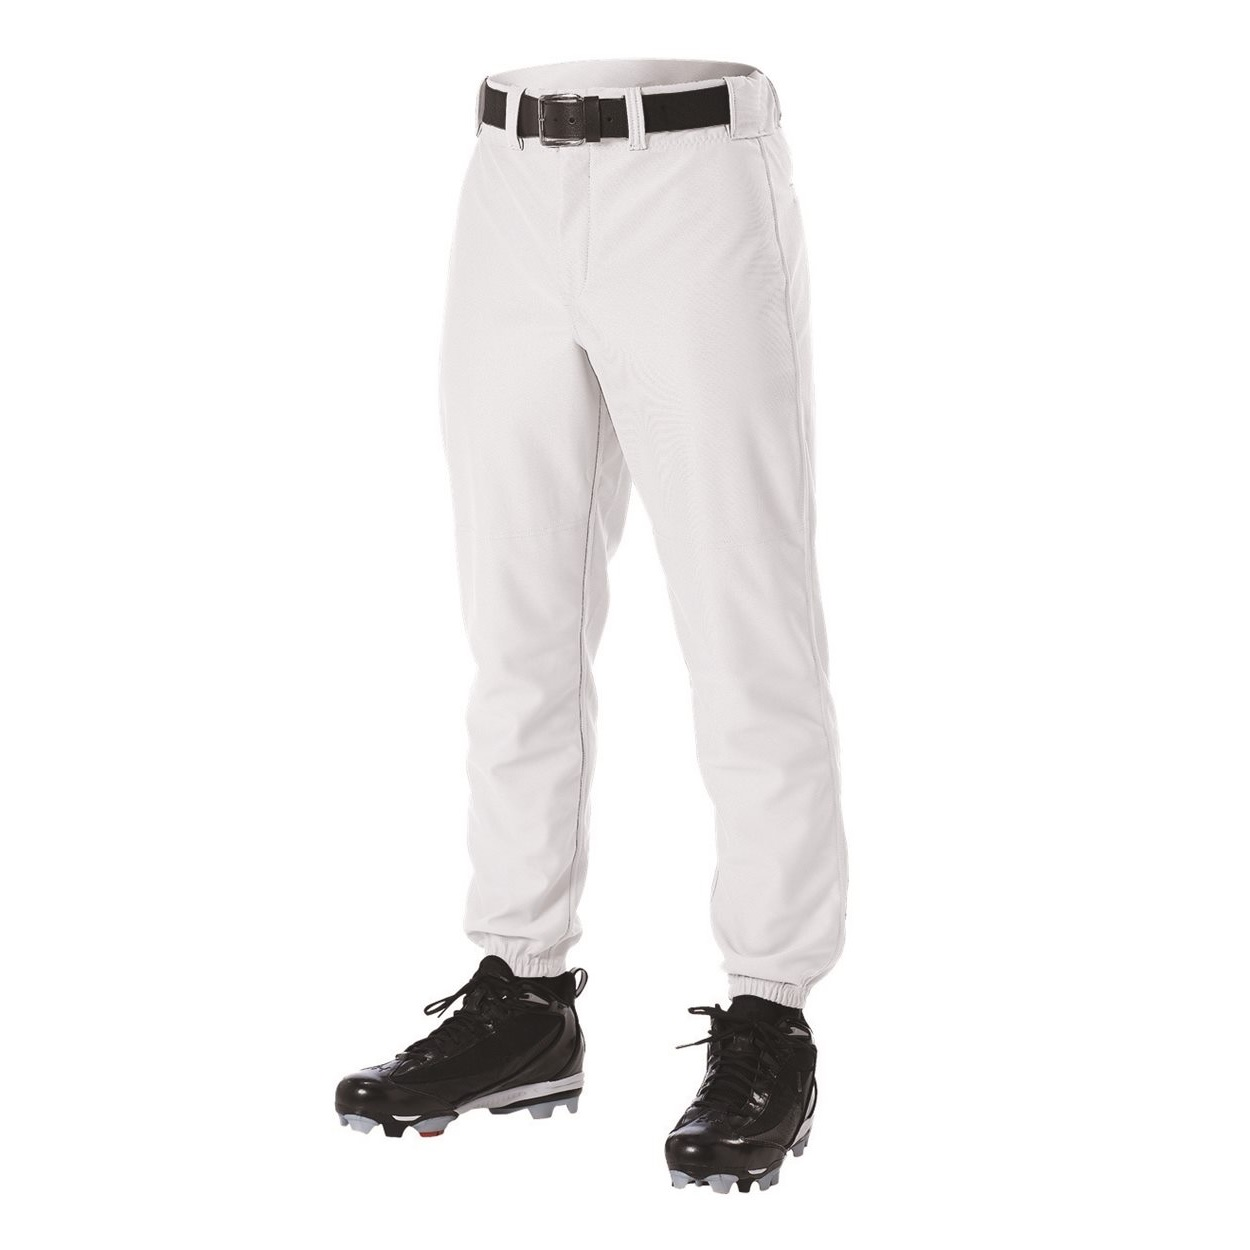 605PXW Alleson Adult Pants W/Loops White Xxl LARGE